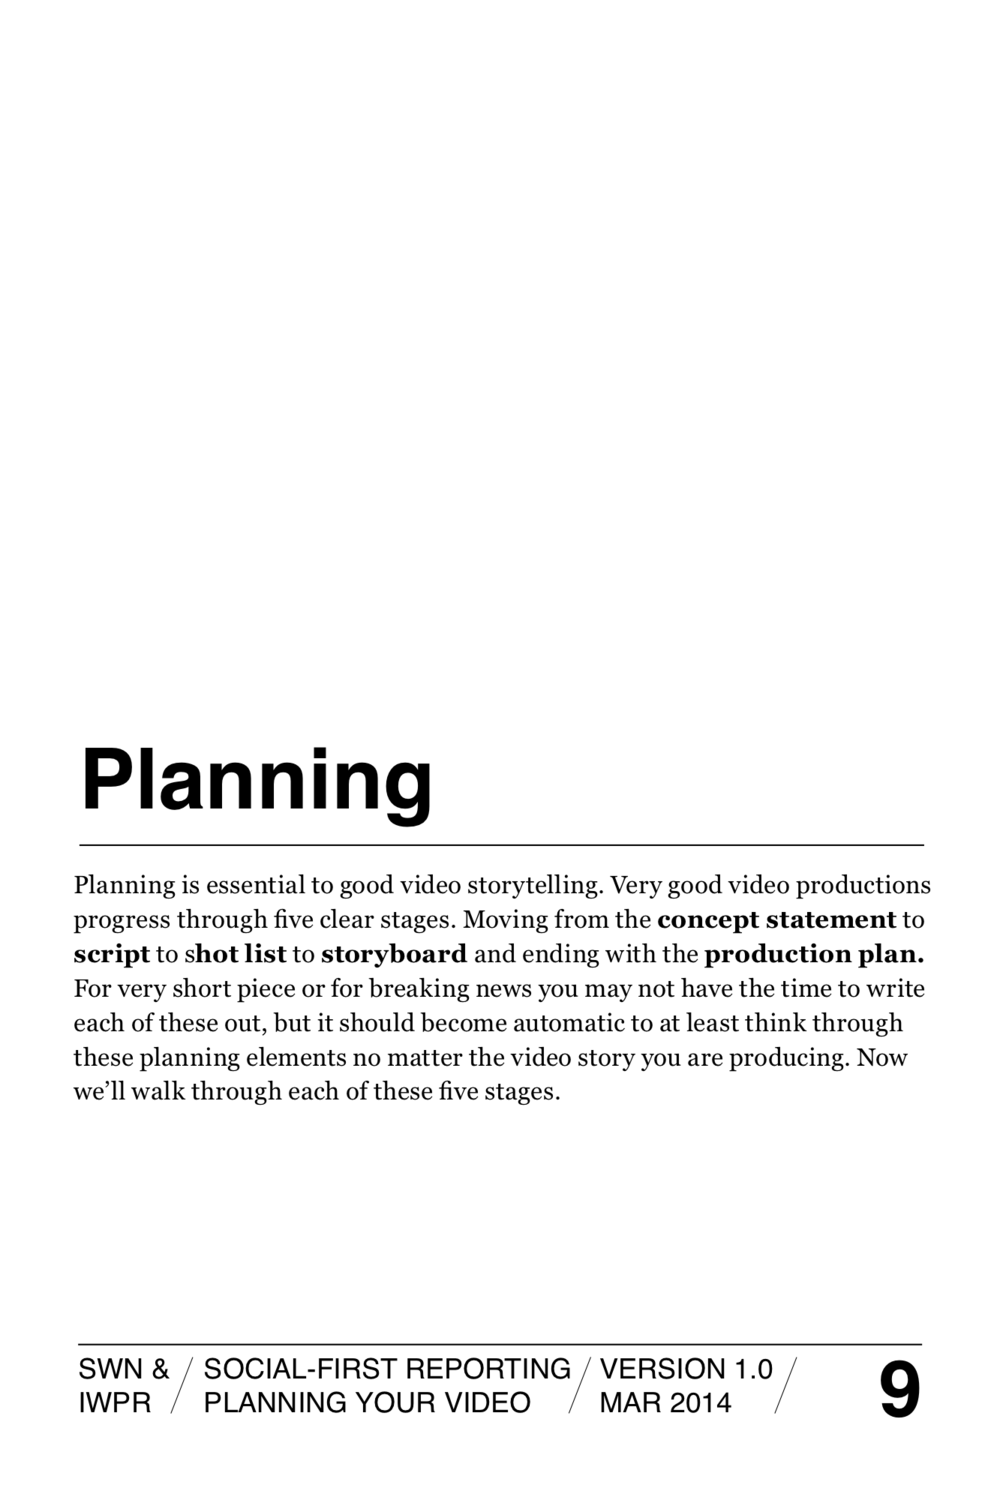 planningvideo 9.png